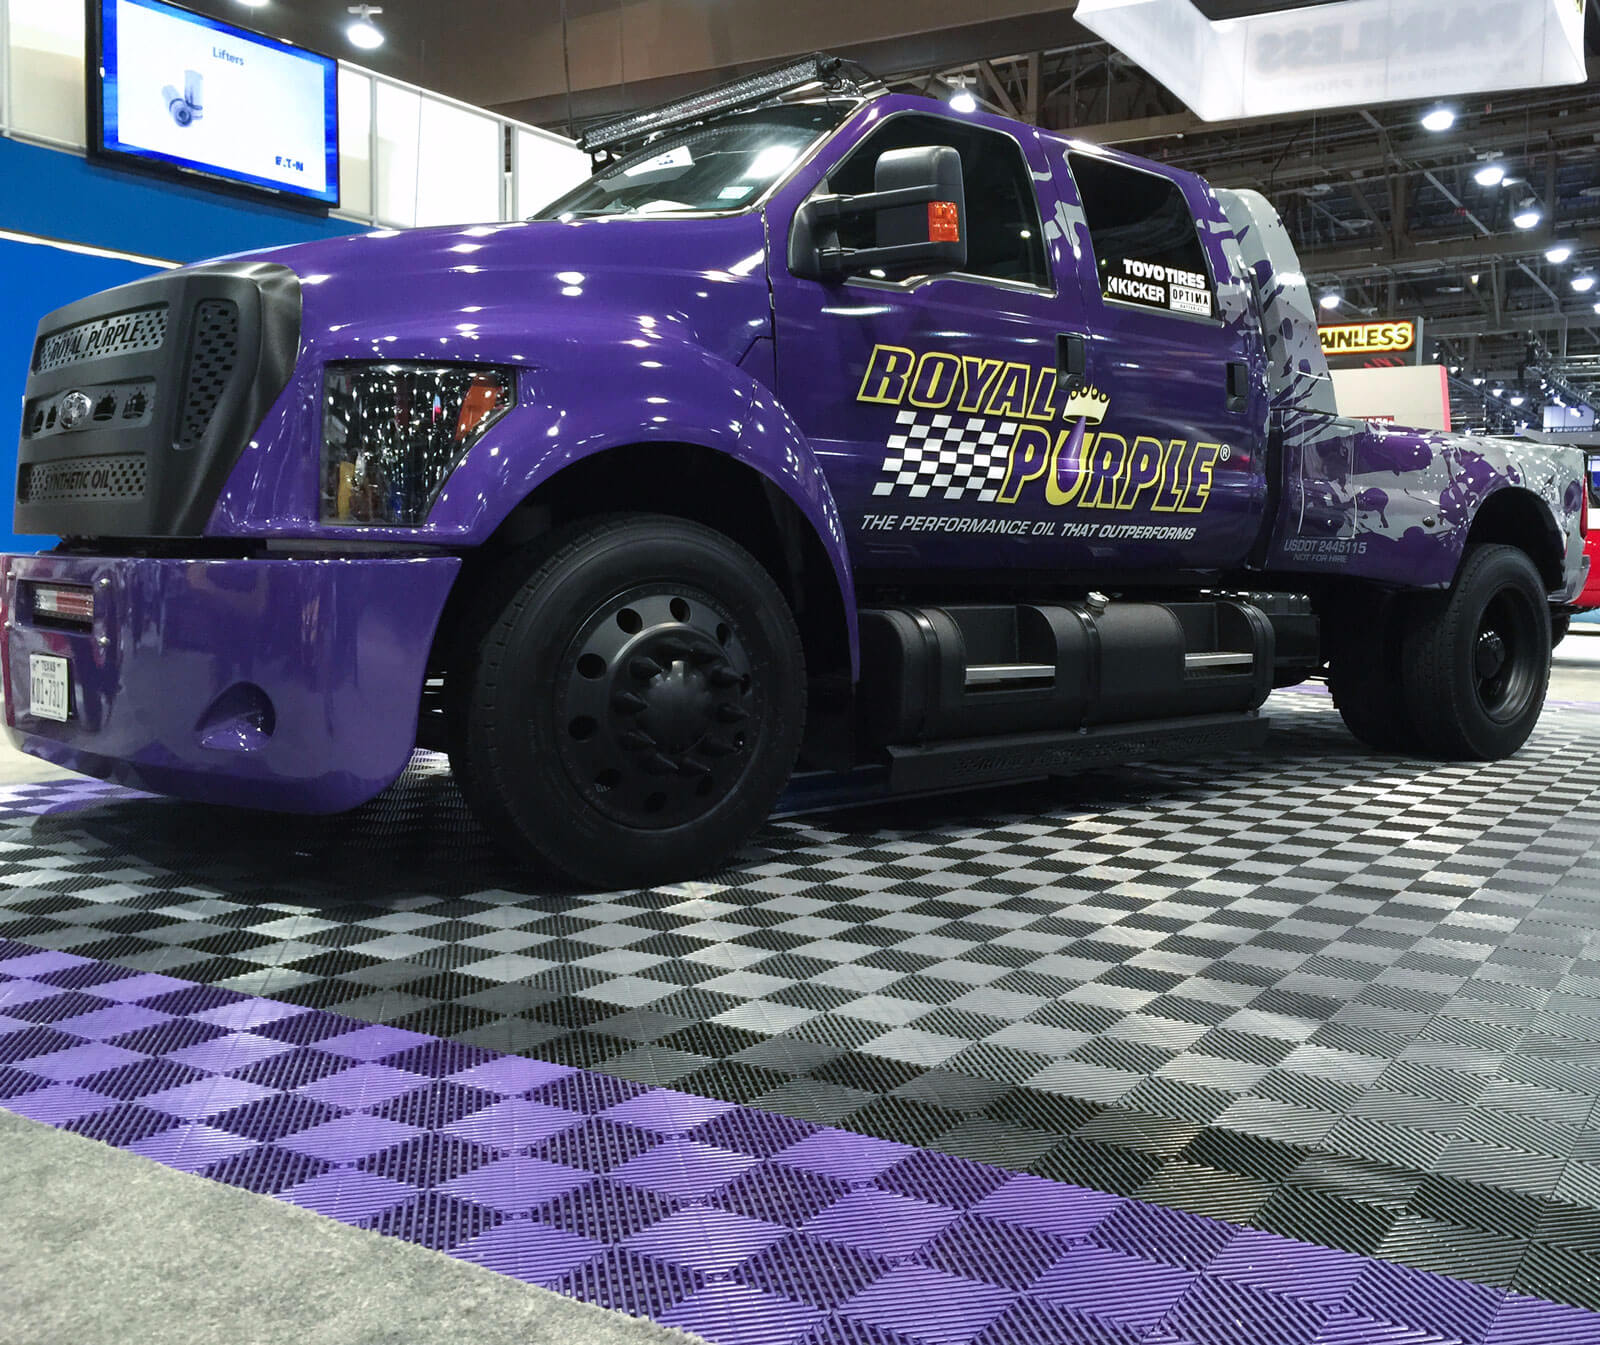 Royal purple car show display with matching Free-Flow portable floor